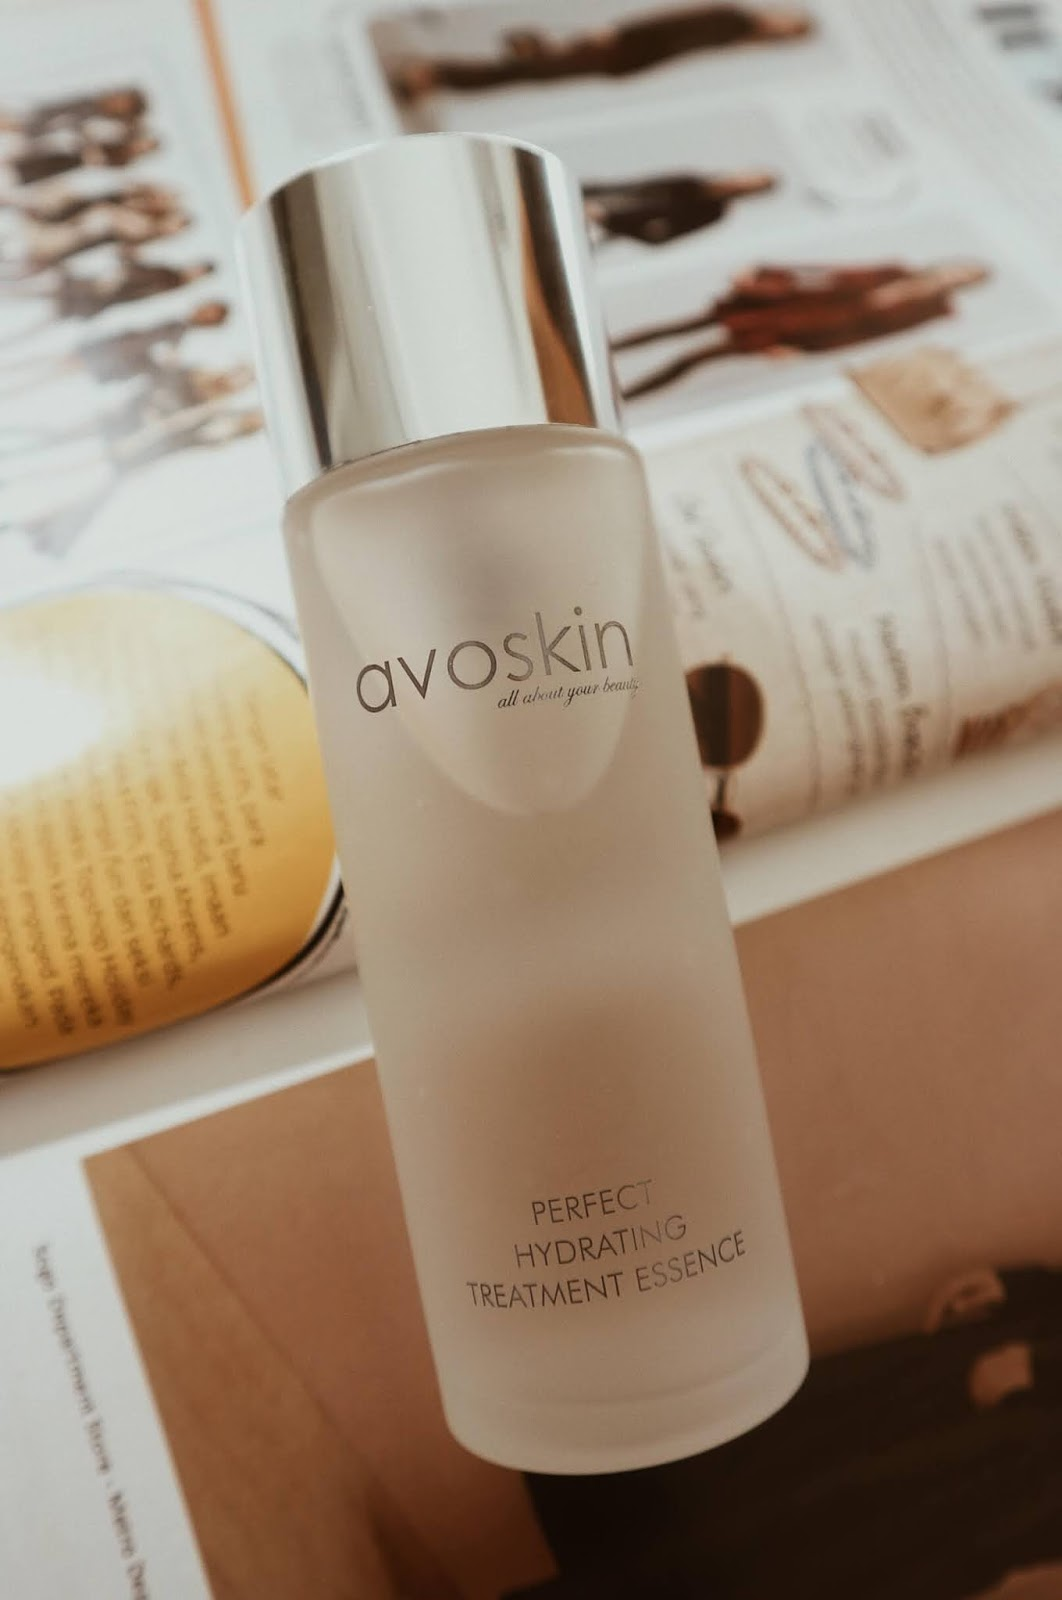 Avoskin Perfect Hydrating Treatment Essence Review